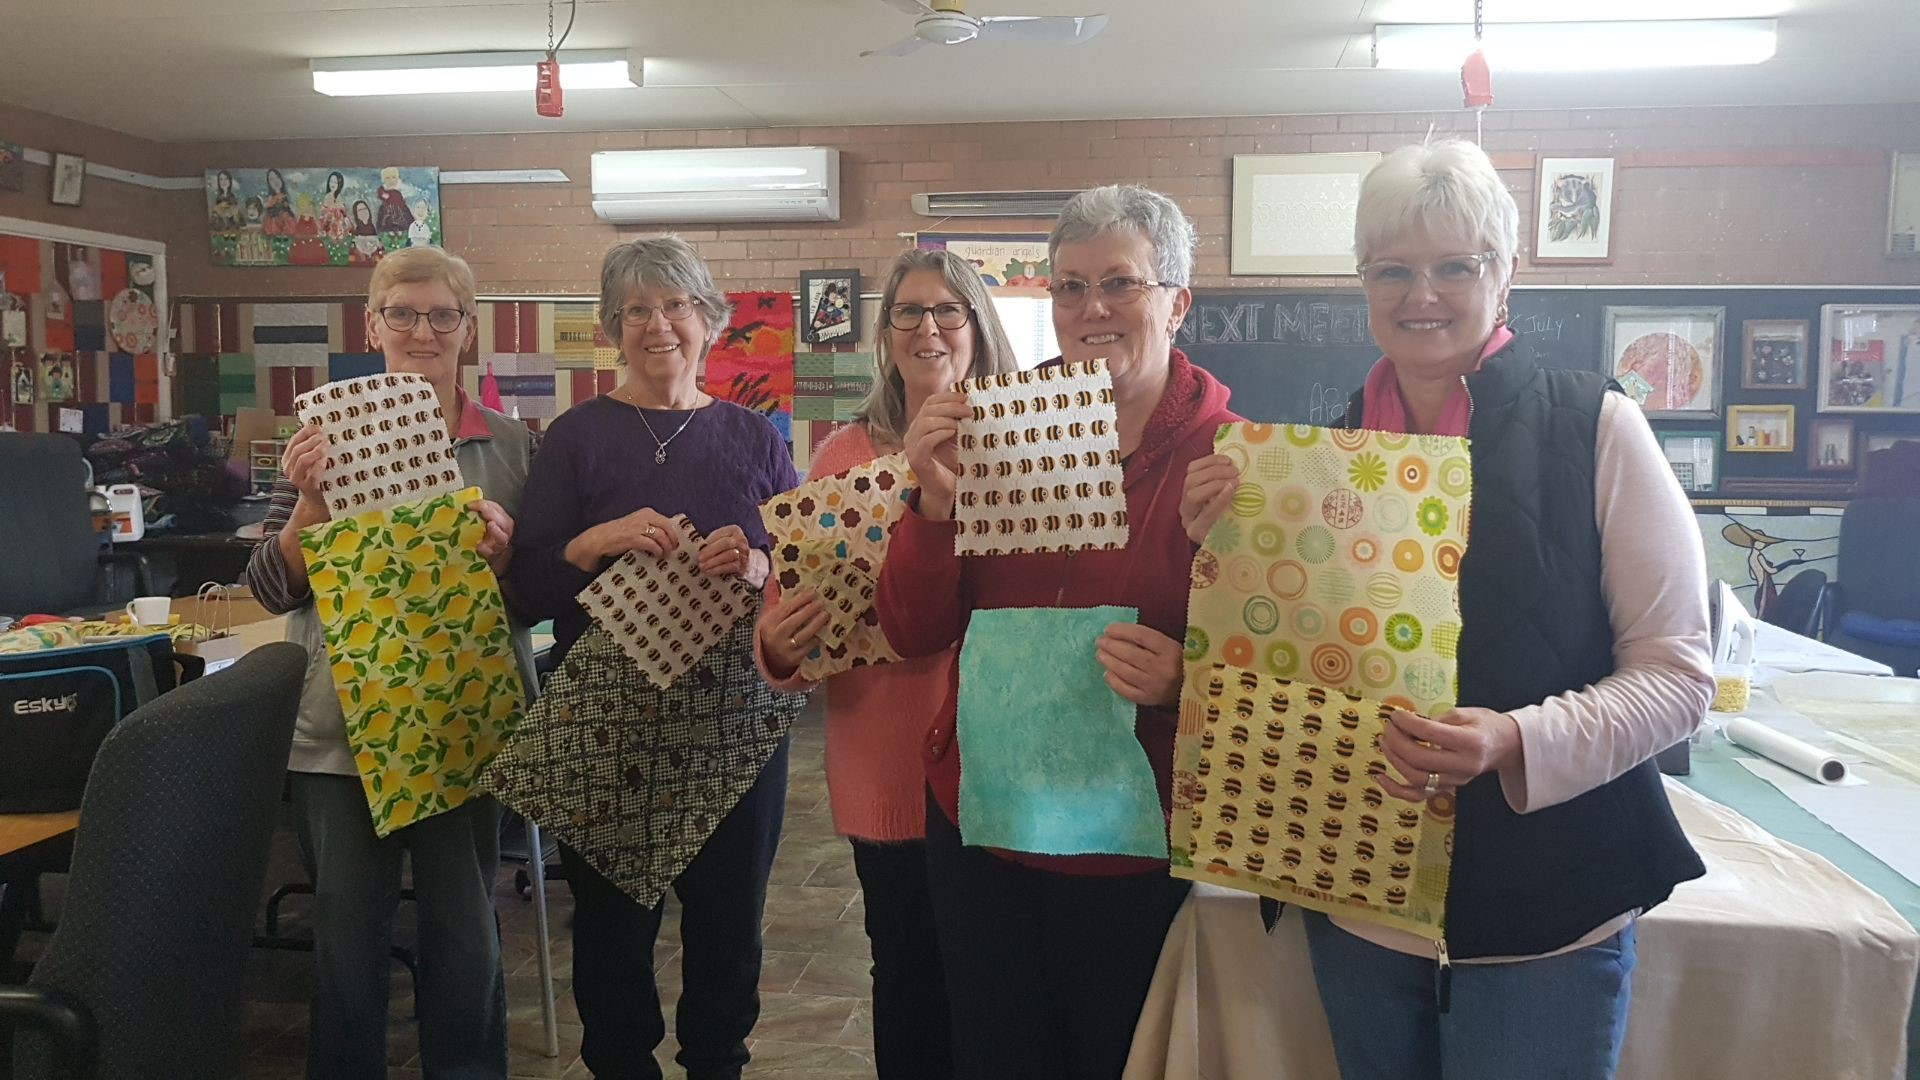 Waroona's Creative Workshops: 'It's a Wrap'